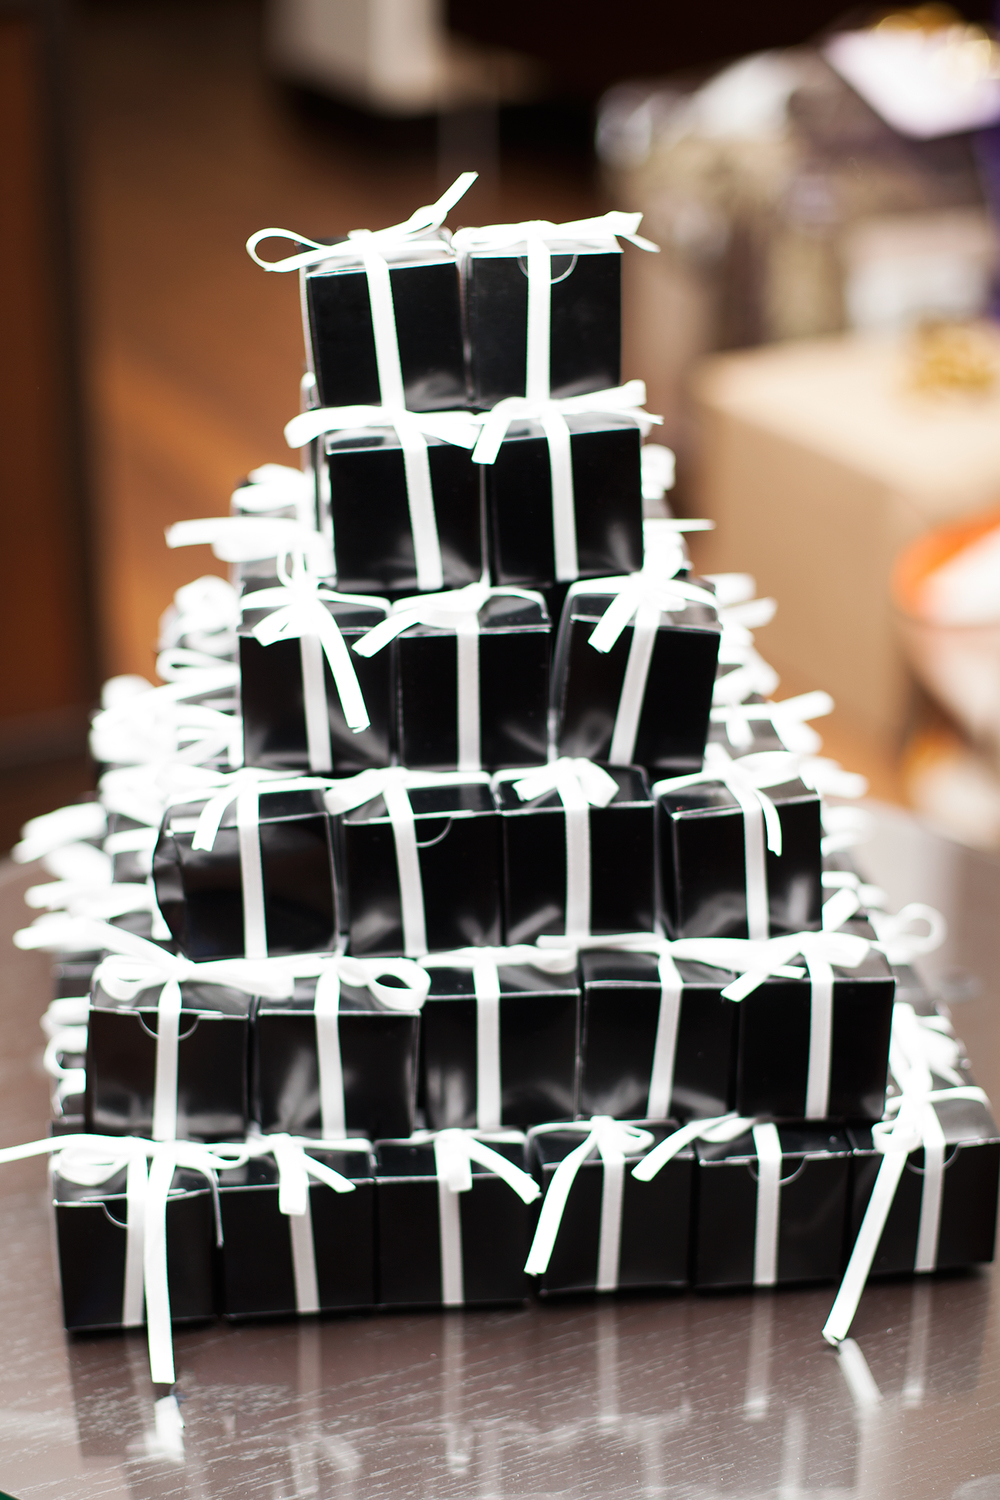 giftbox tower